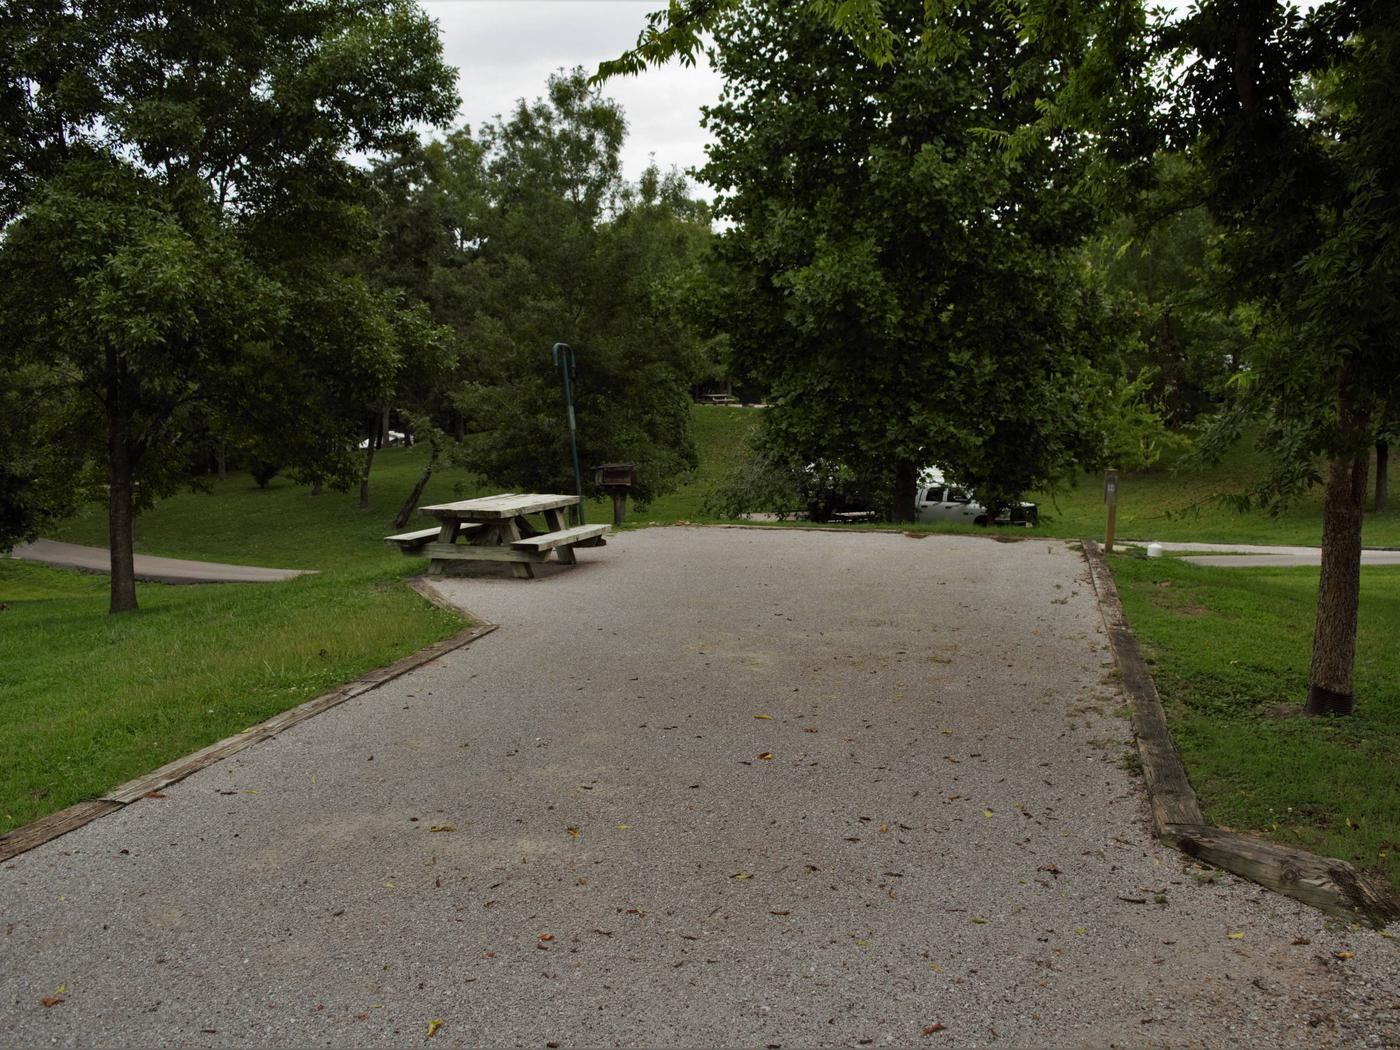 WILLOW GROVE CAMPGROUND SITE #19